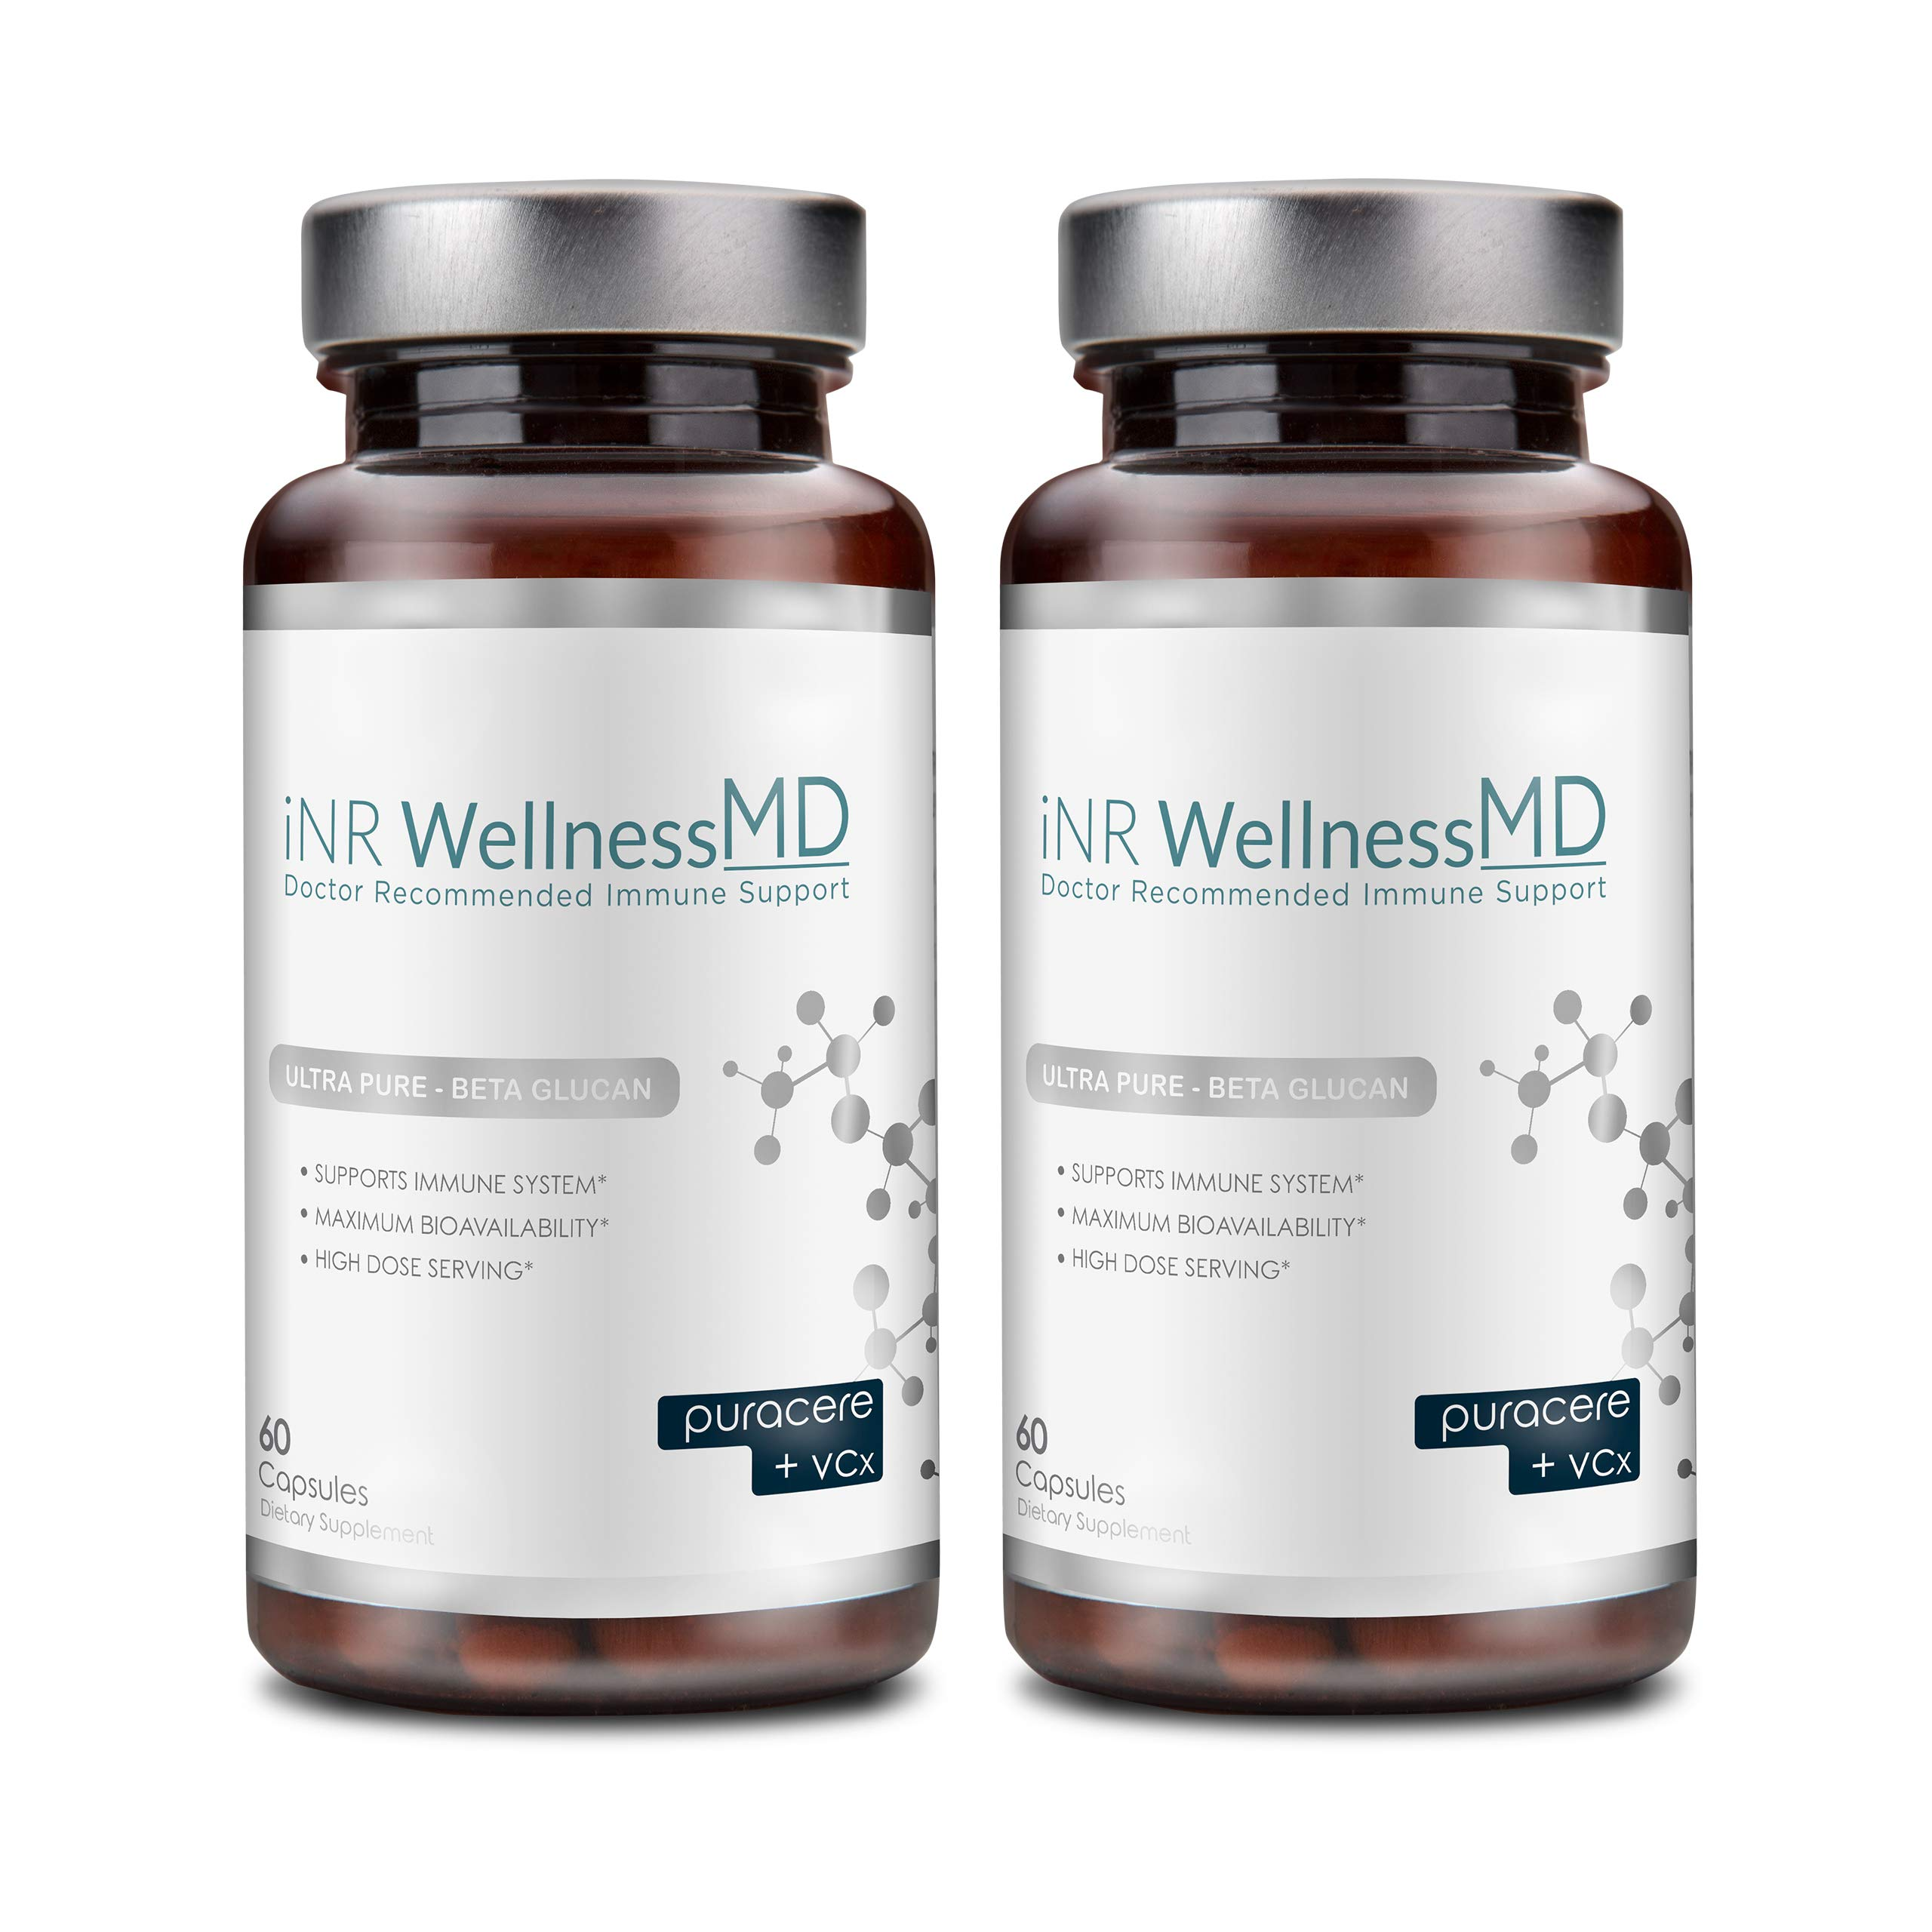 Inr Wellness MD - Ultra-Pure Beta-Glucan | Dietary Supplement with PURACERE (VCx) for Immune Support | 508mg (120 Caps)